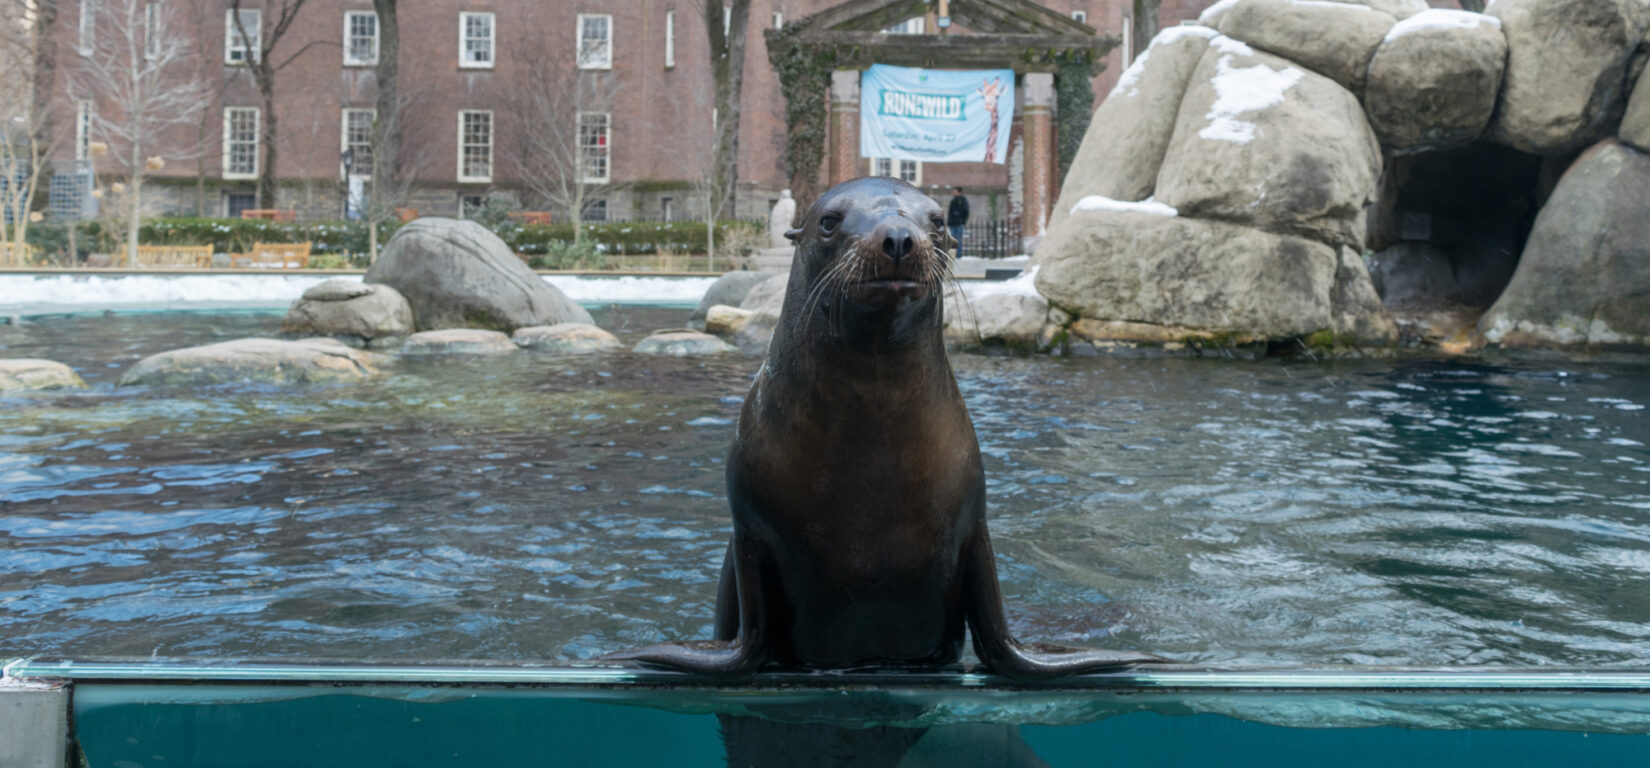 A seal props itself up along the perimeter of its pool.